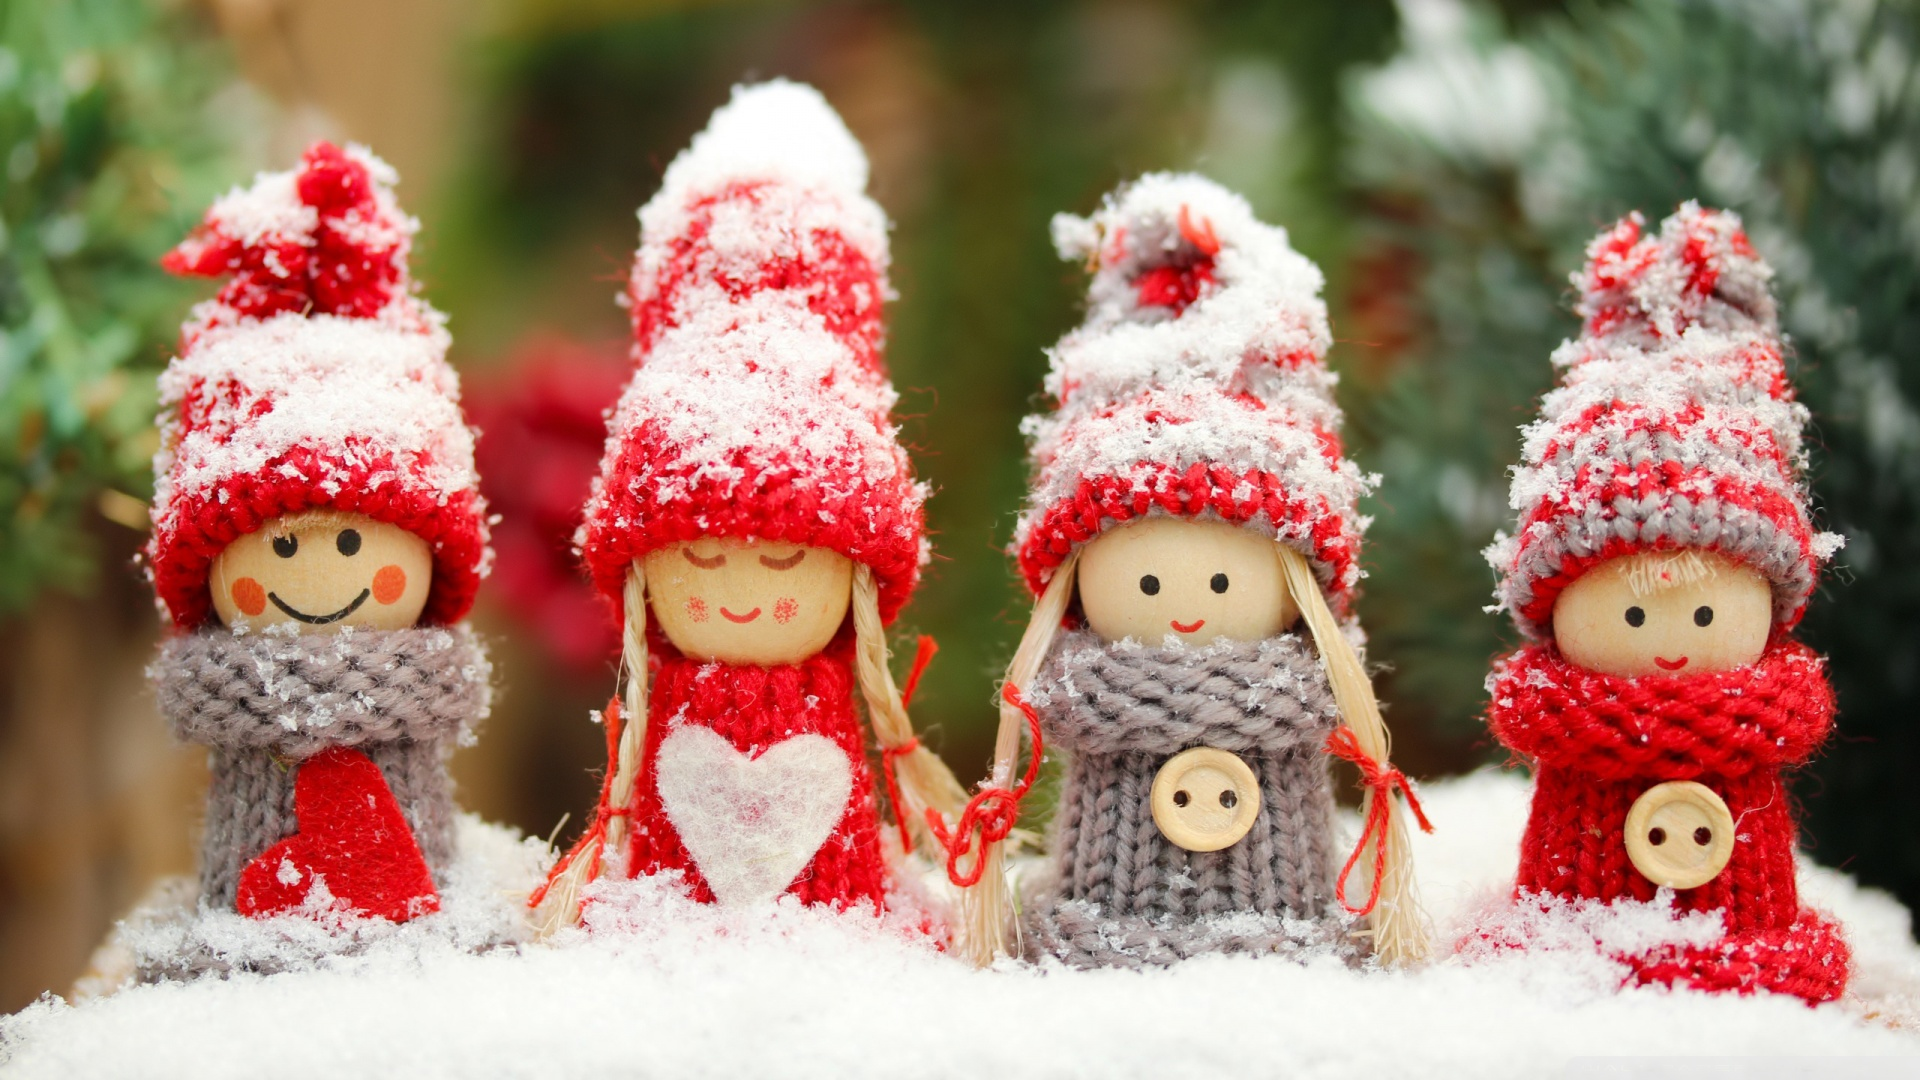 winter_dolls-wallpaper-1920x1080